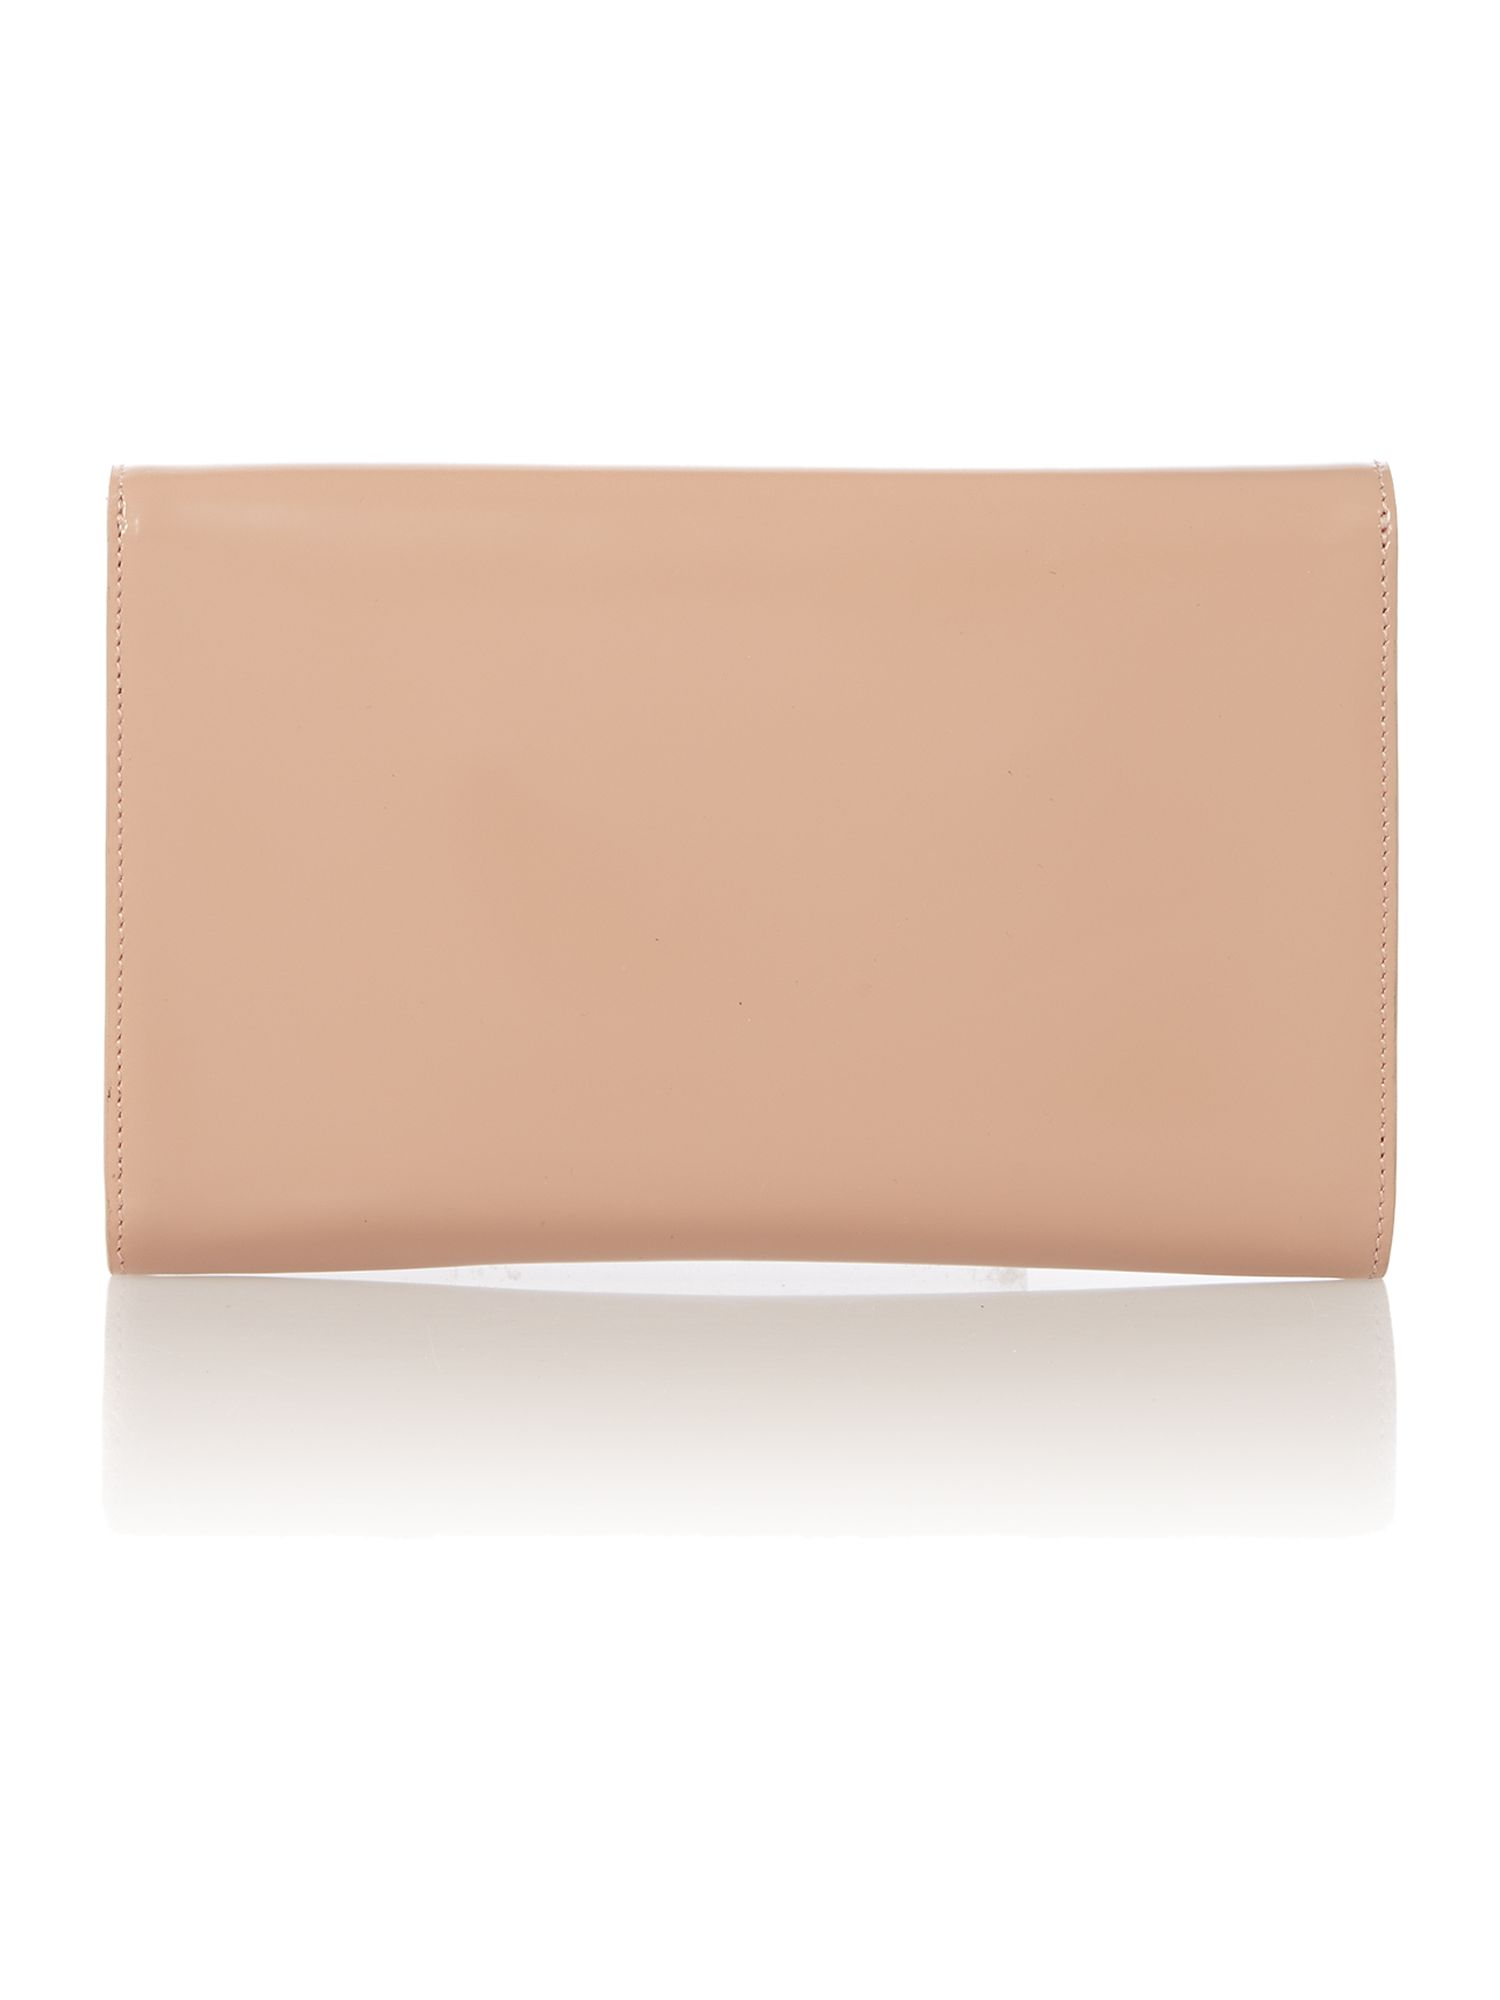 Polished Calf pink clutch bag